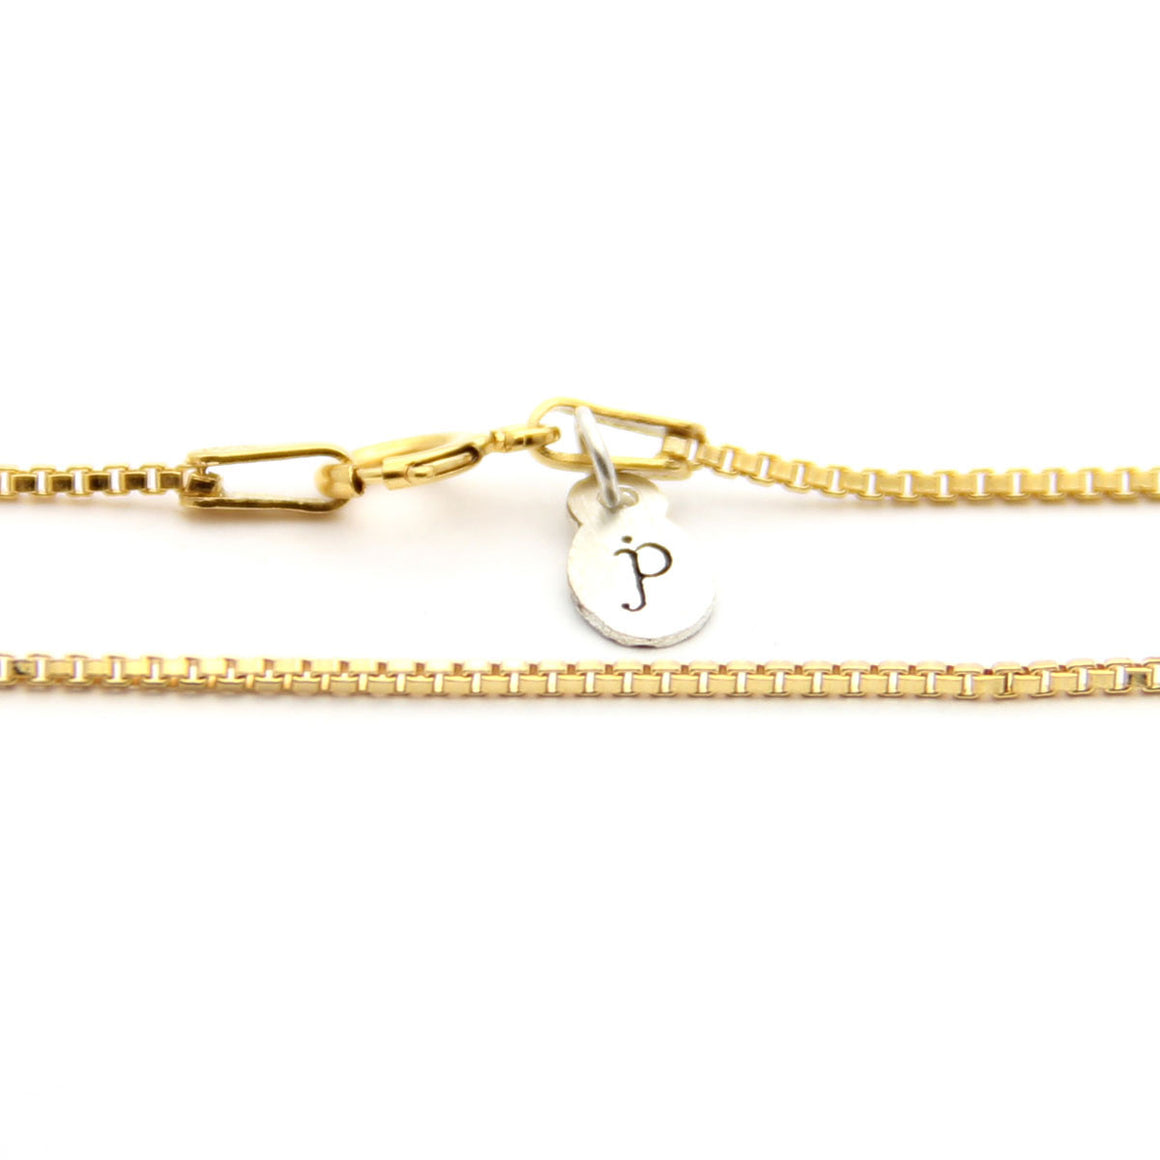 gold box chain length option, gold chain add on, design your own necklace, proud mama®